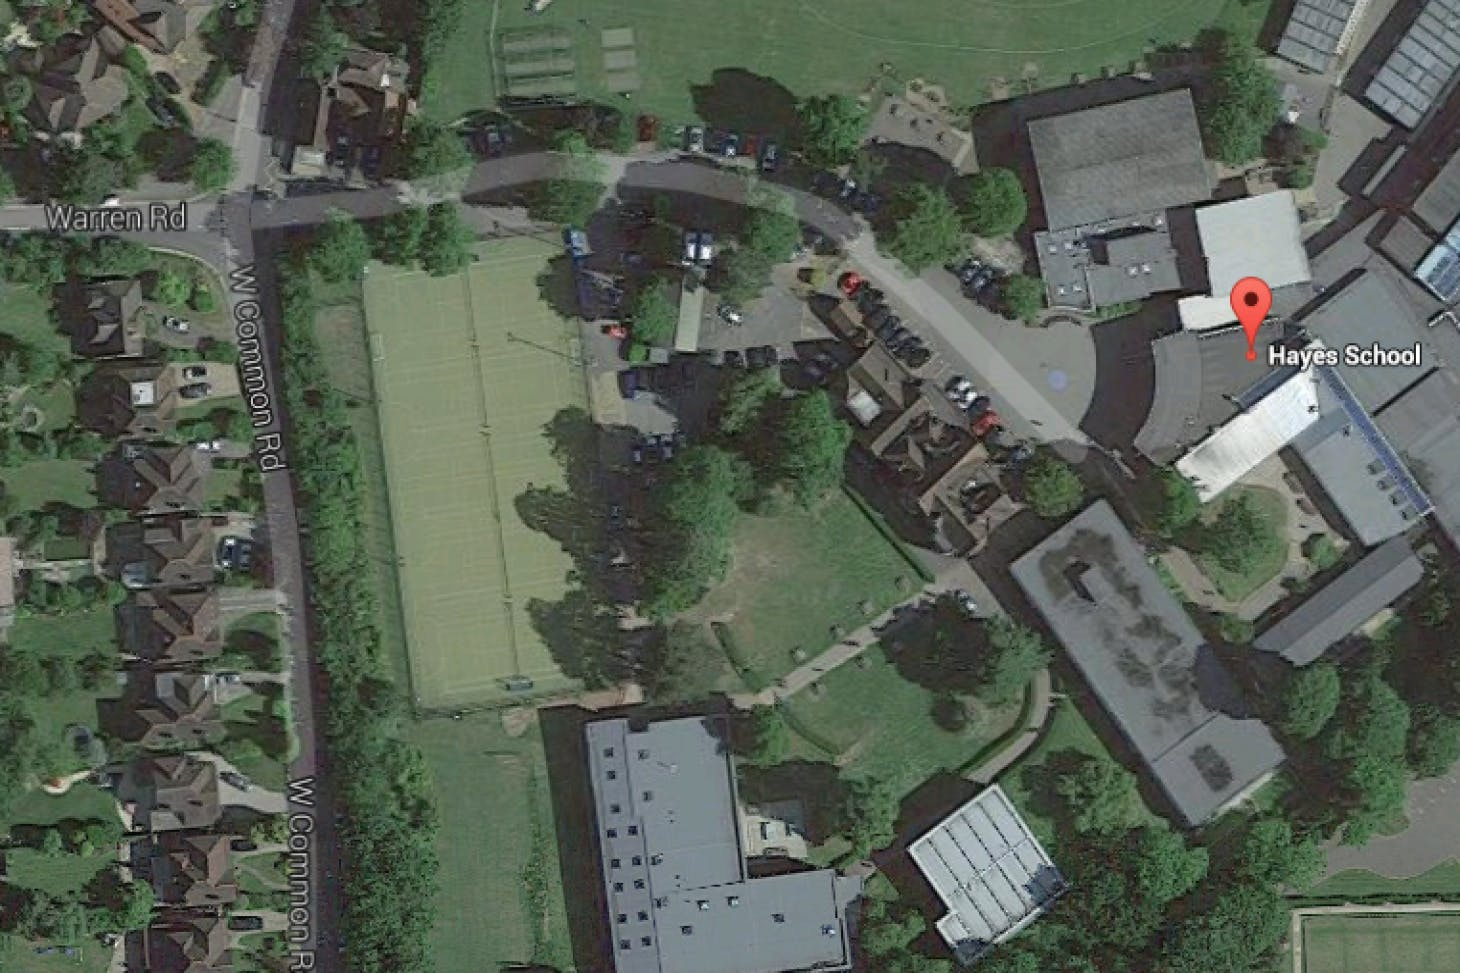 Hayes School 11 a side | Grass football pitch